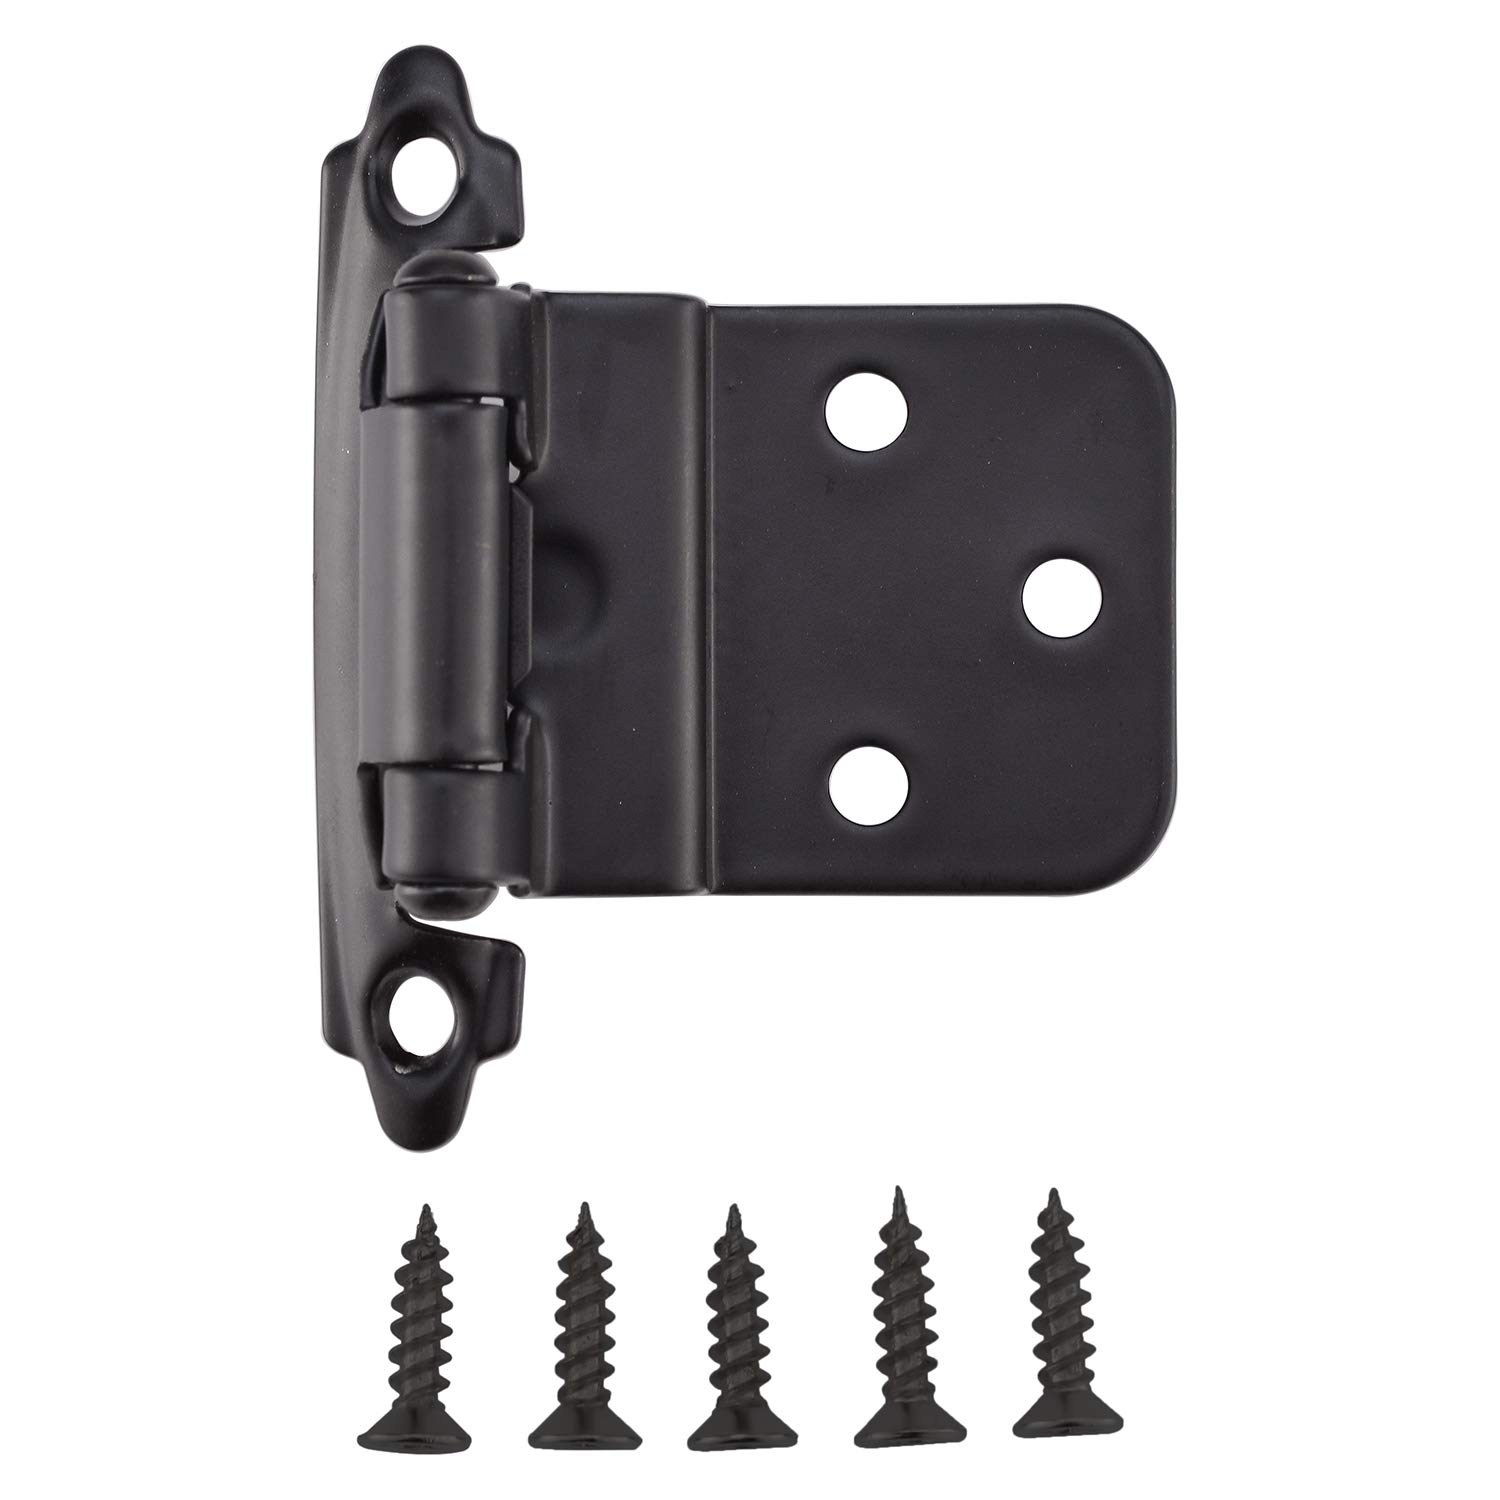 KINGO HOME Face Mount Self Closing Black 3/8'' Inset Cabinet Hinges, 20 Pack by KINGO HOME (Image #6)